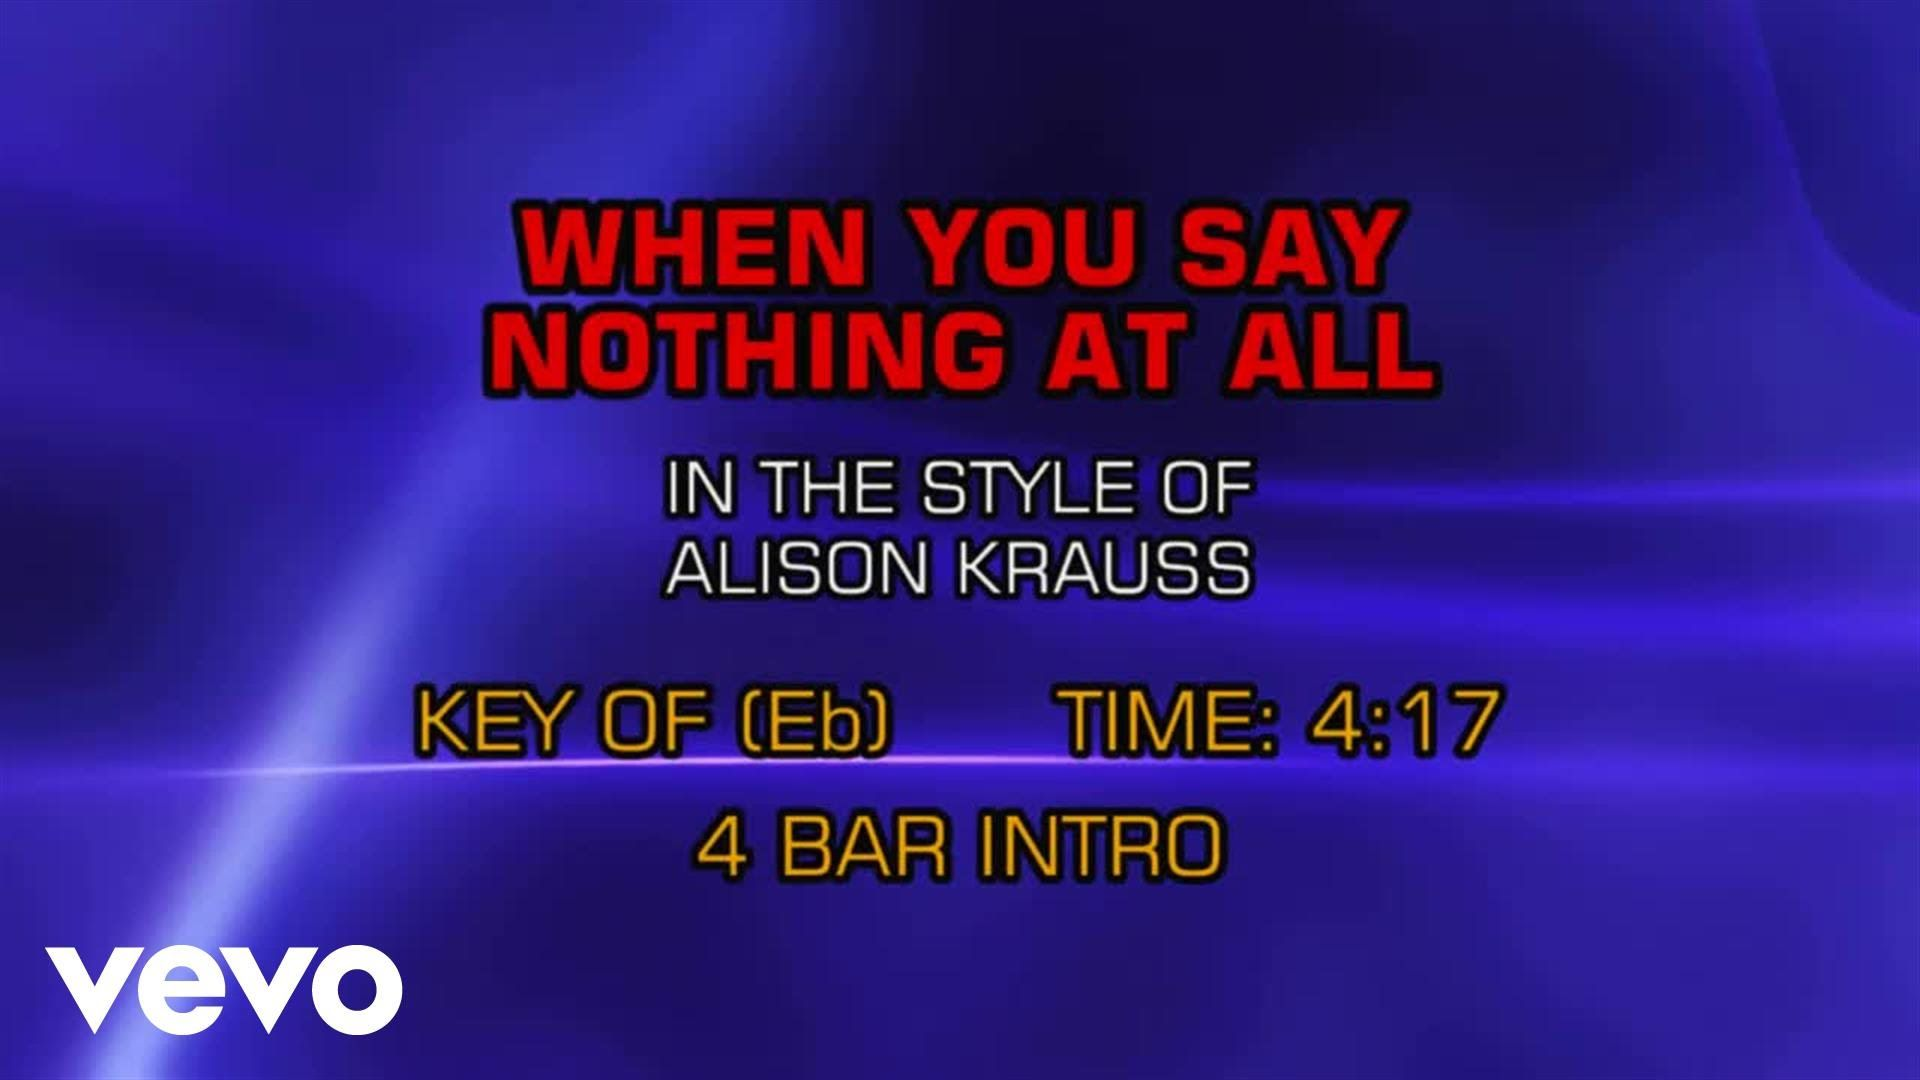 Alison Krauss Union Station When You Say Nothing At All